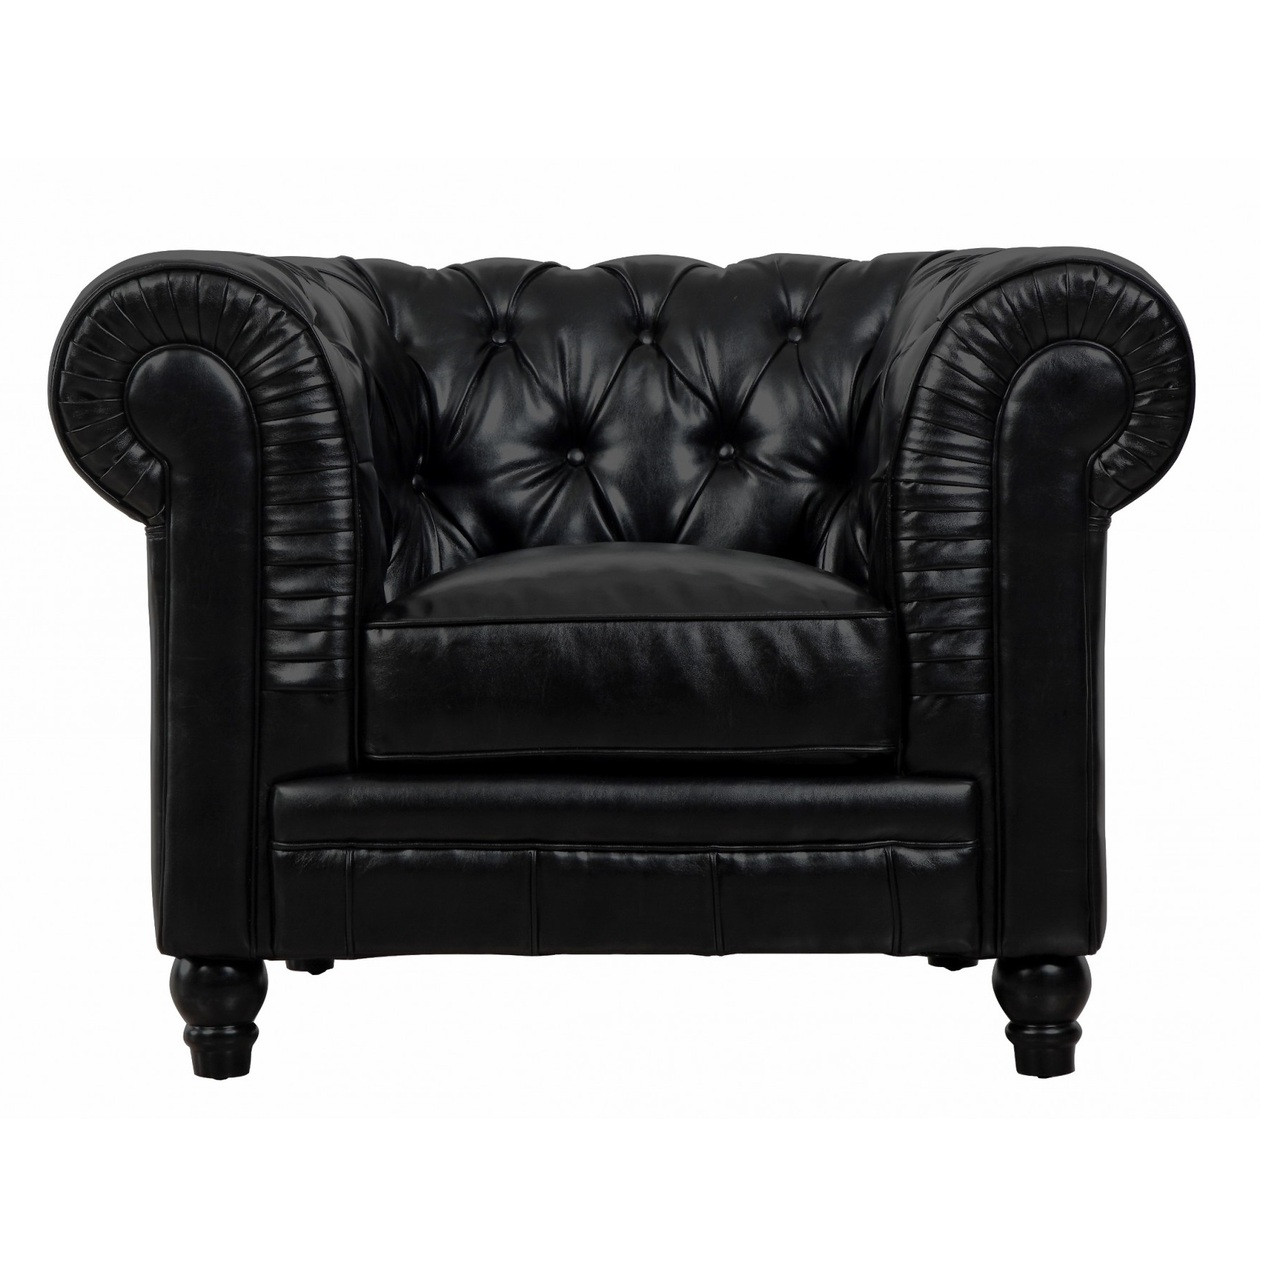 Leather Chesterfield Chair Zahara Black Leather Chesterfield Club Chair Zin Home